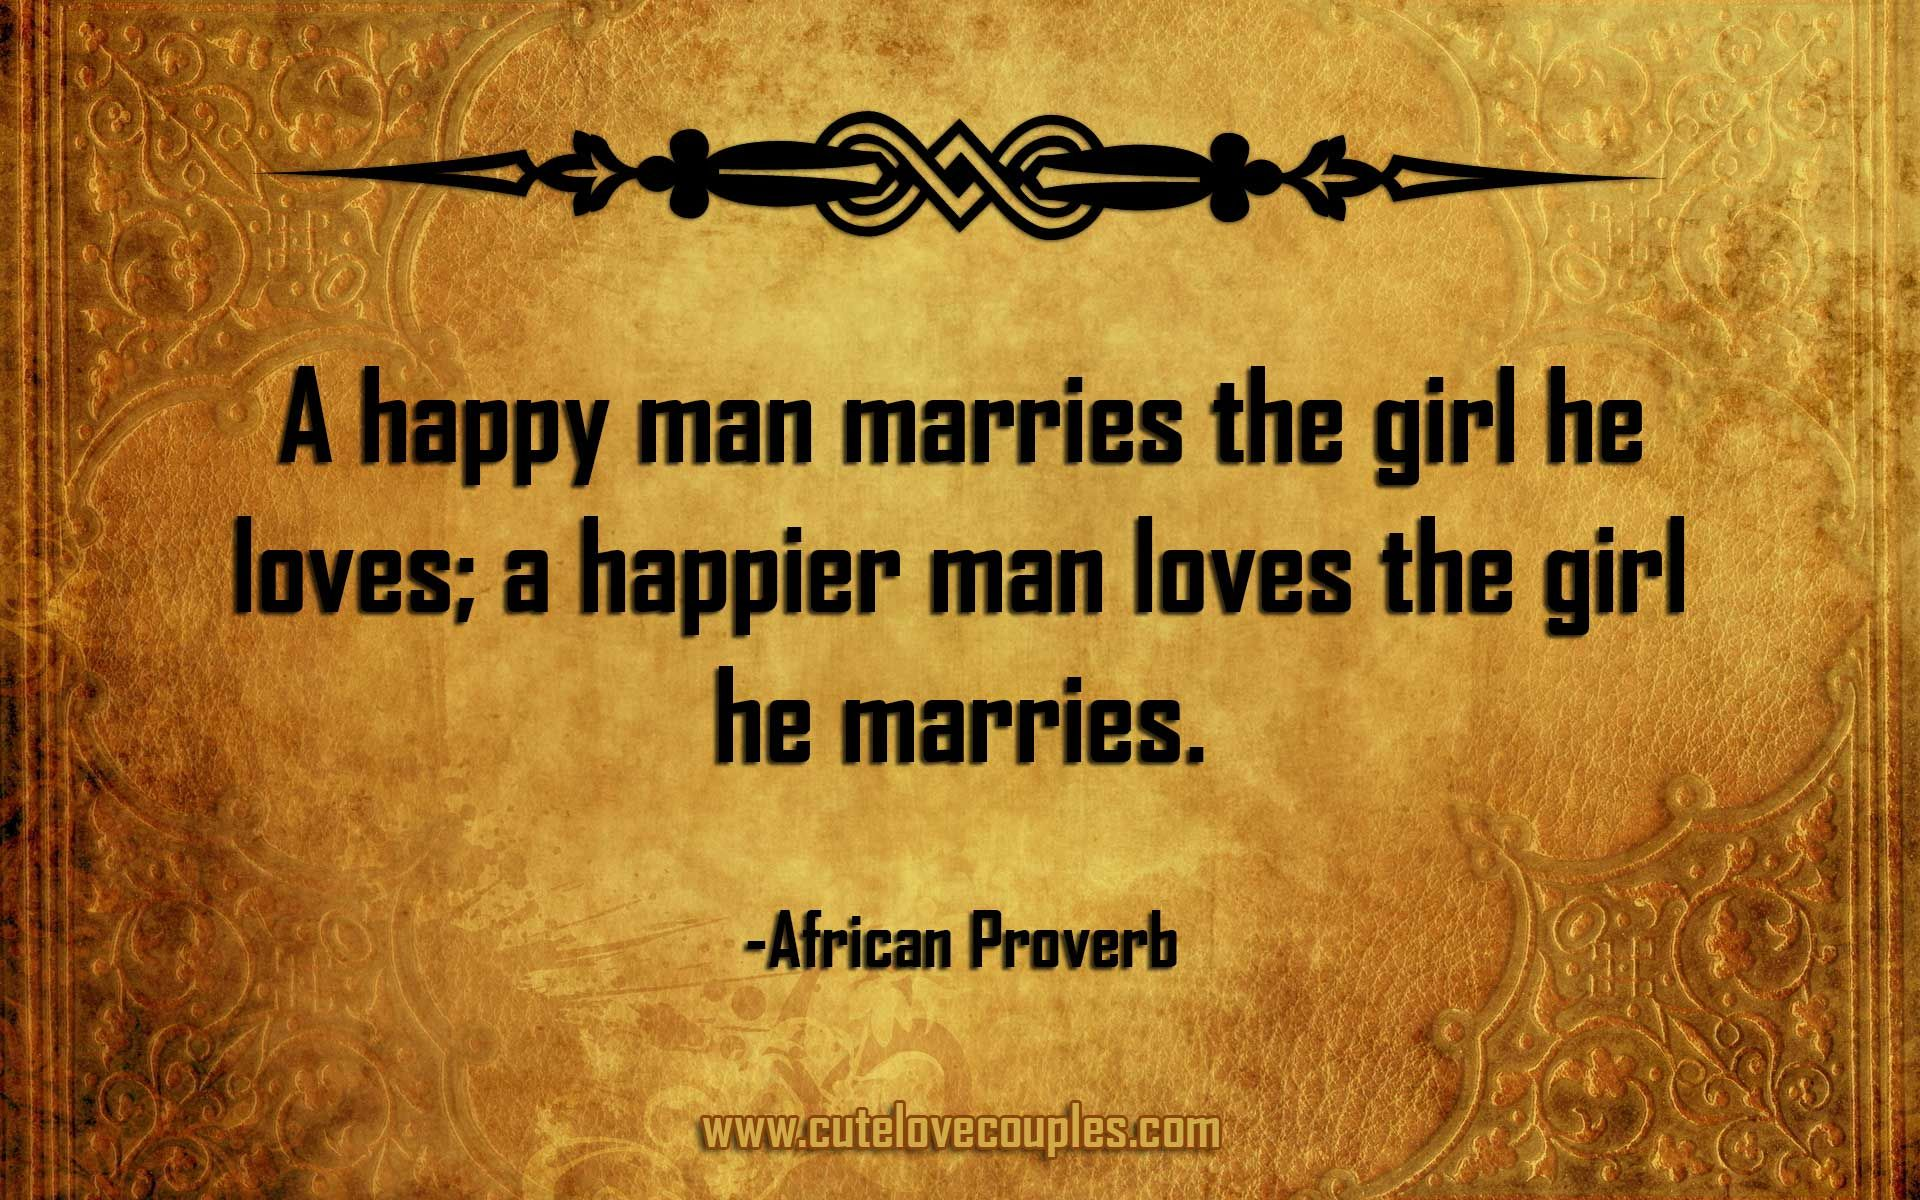 African proverbs on love and marriage